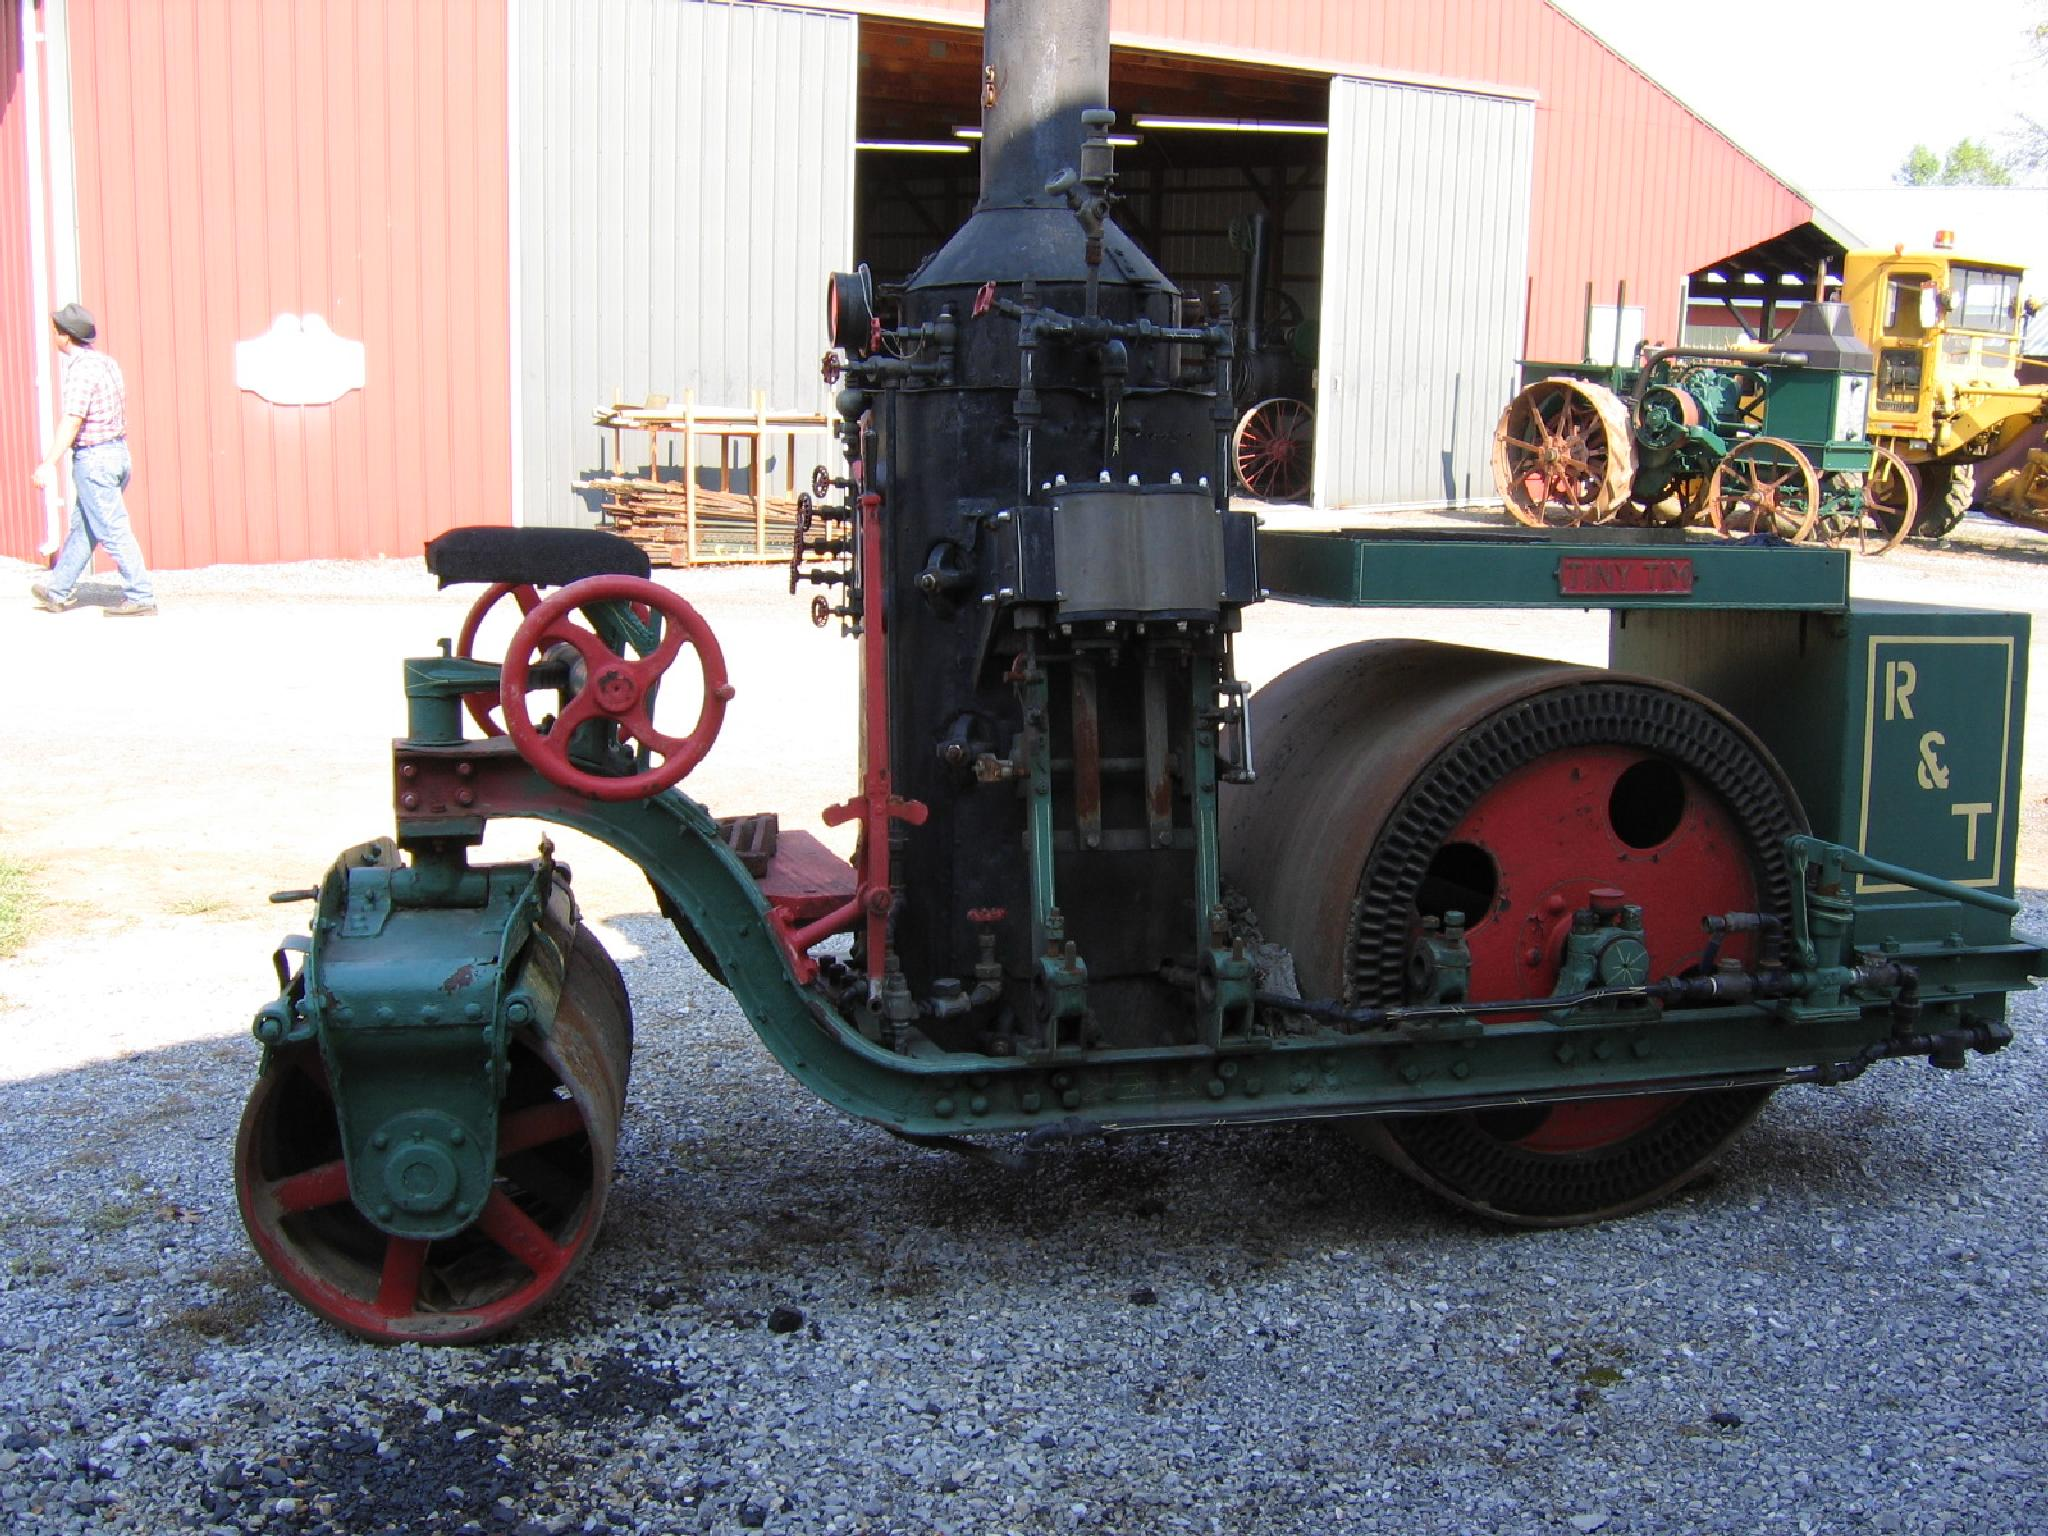 Rough & Tumble lll Old Steam Roller by janet.fisher.503